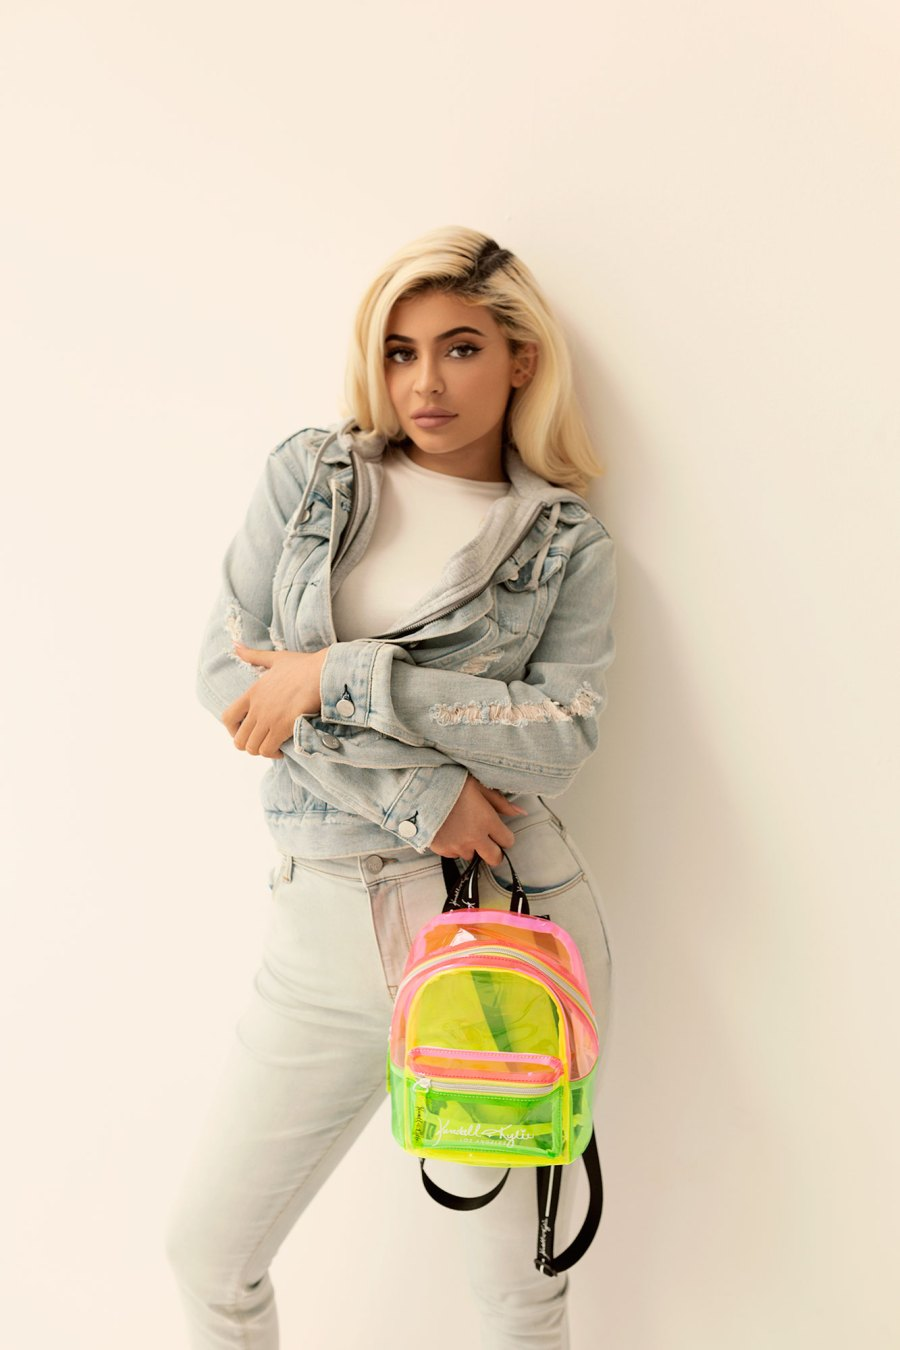 Kylie Jenner Shows Us How to Style the New Kendall x Kylie Handbag Collection